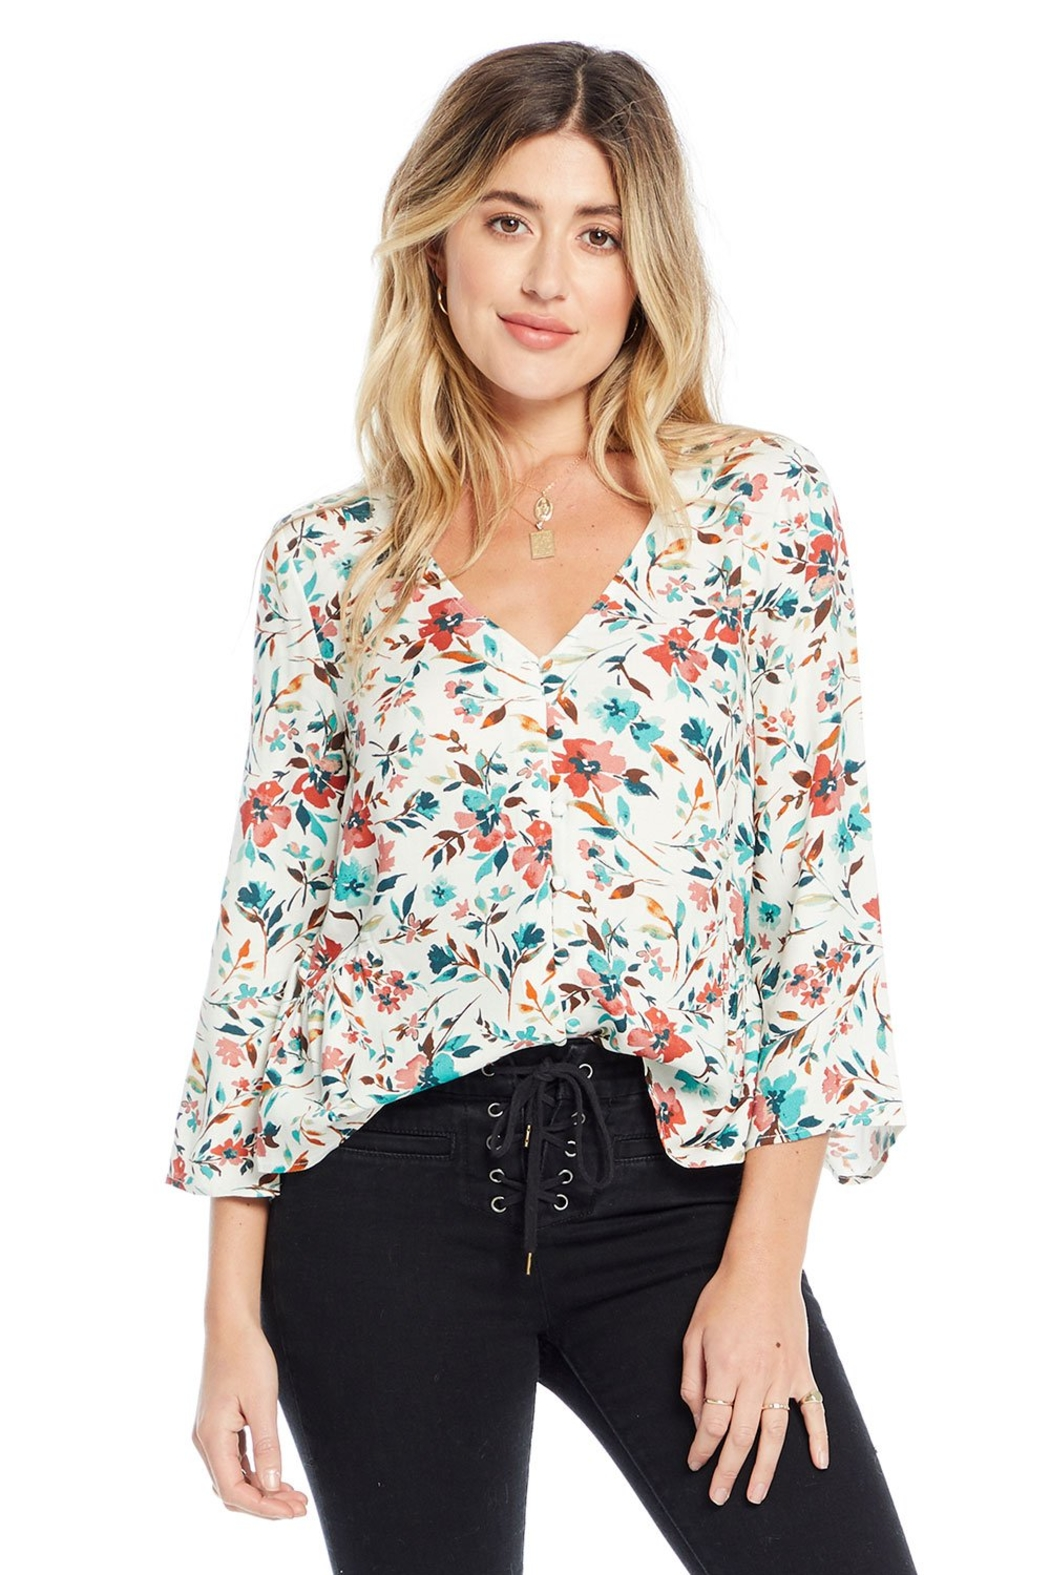 Saltwater Luxe Meadow Blouse - Primrose Floral - Main Image